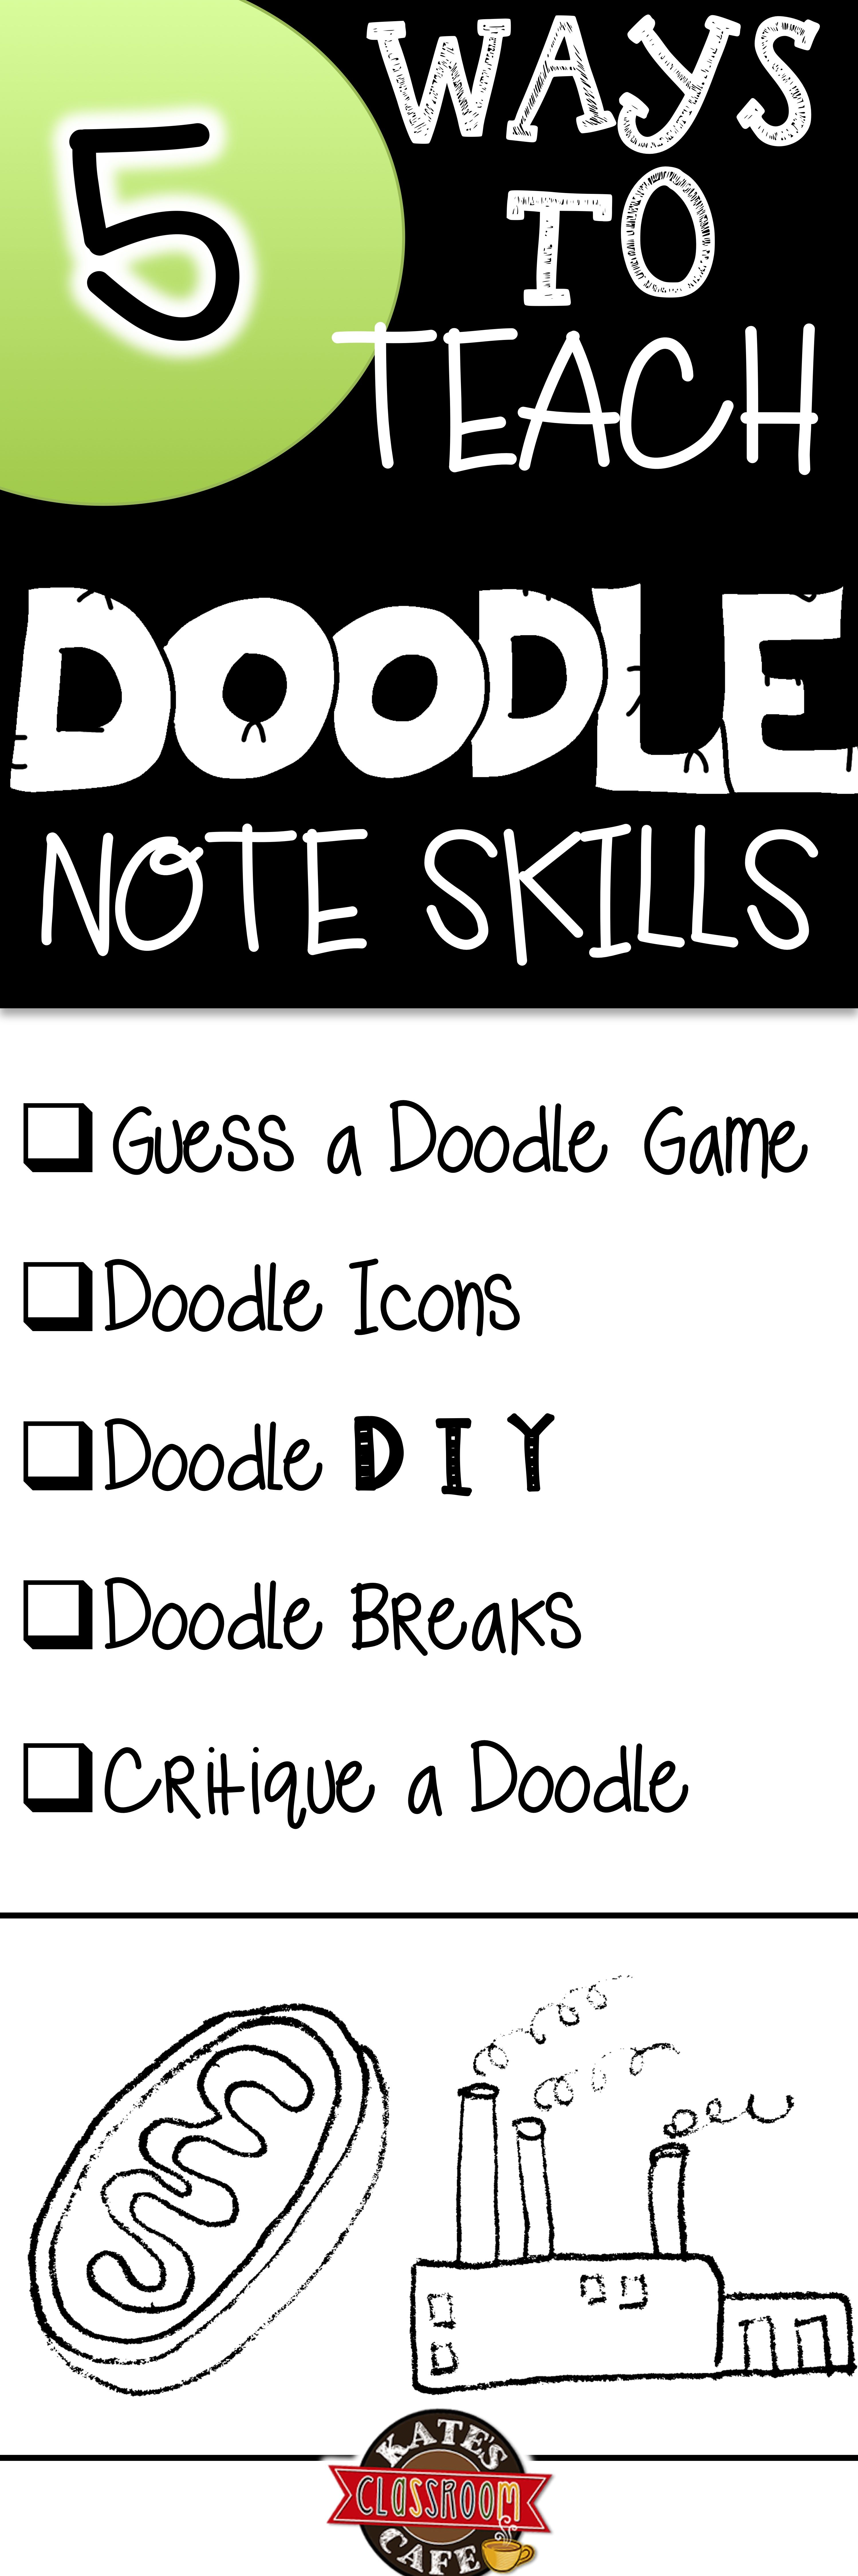 5 Ways To Teach Doodle Note Skills